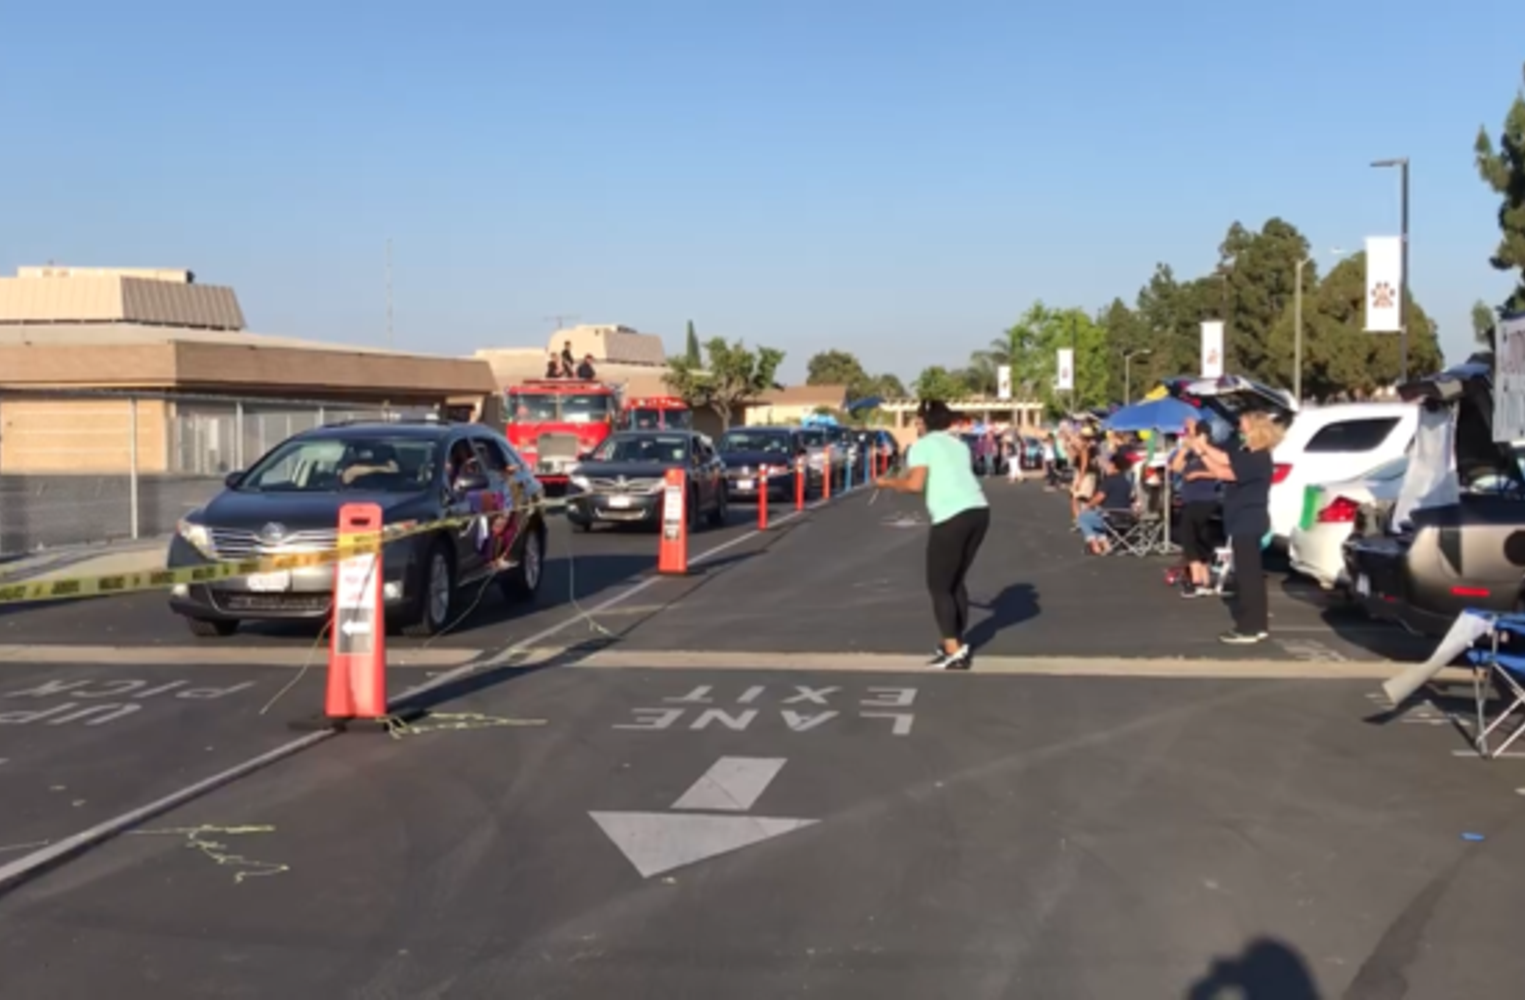 teachers waving at their students in cars